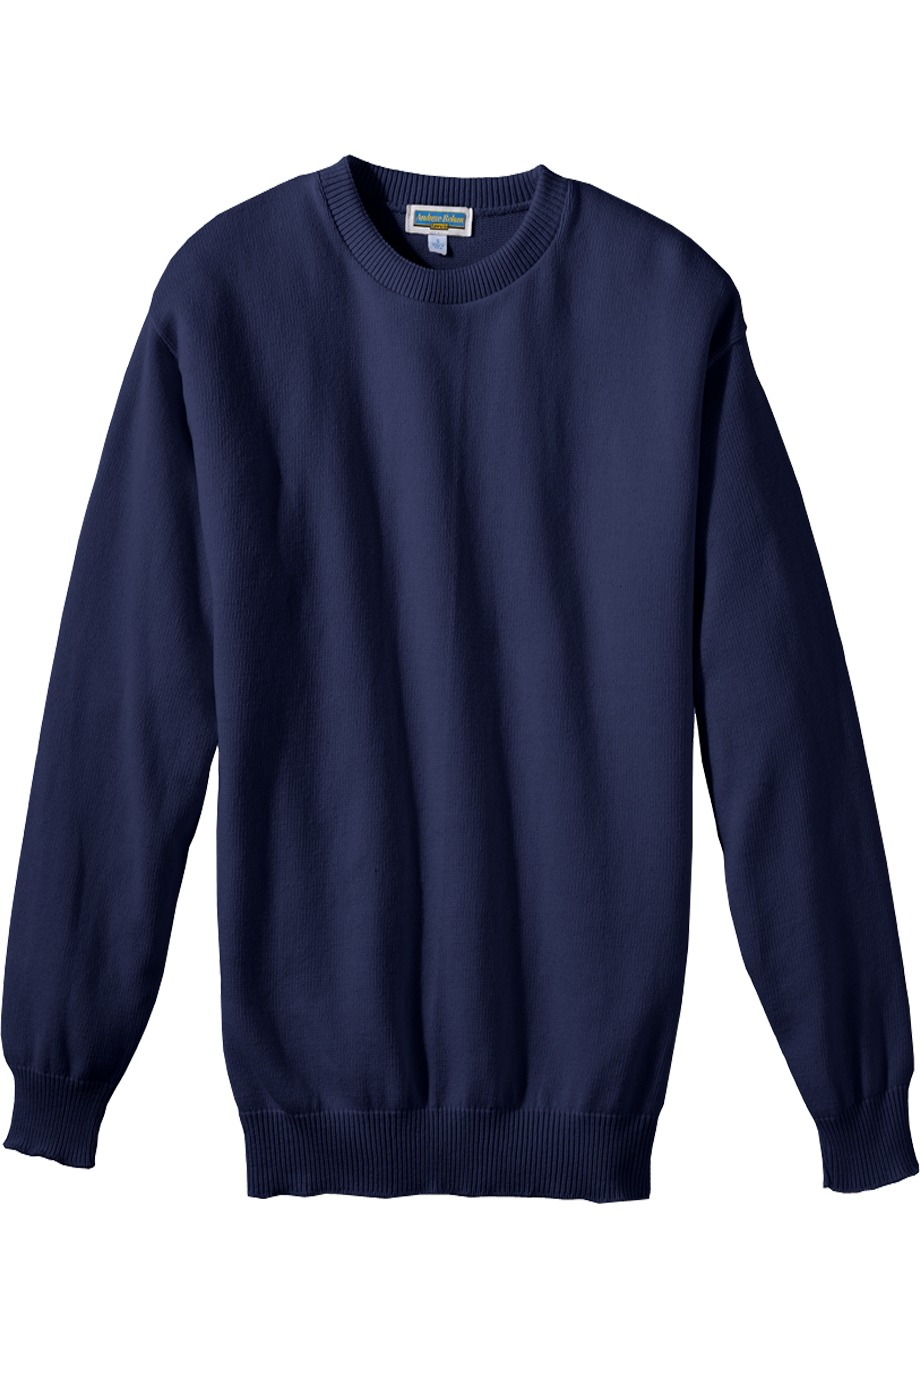 Edwards Garment 786 - Jersey Stitch Crew Neck Sweater